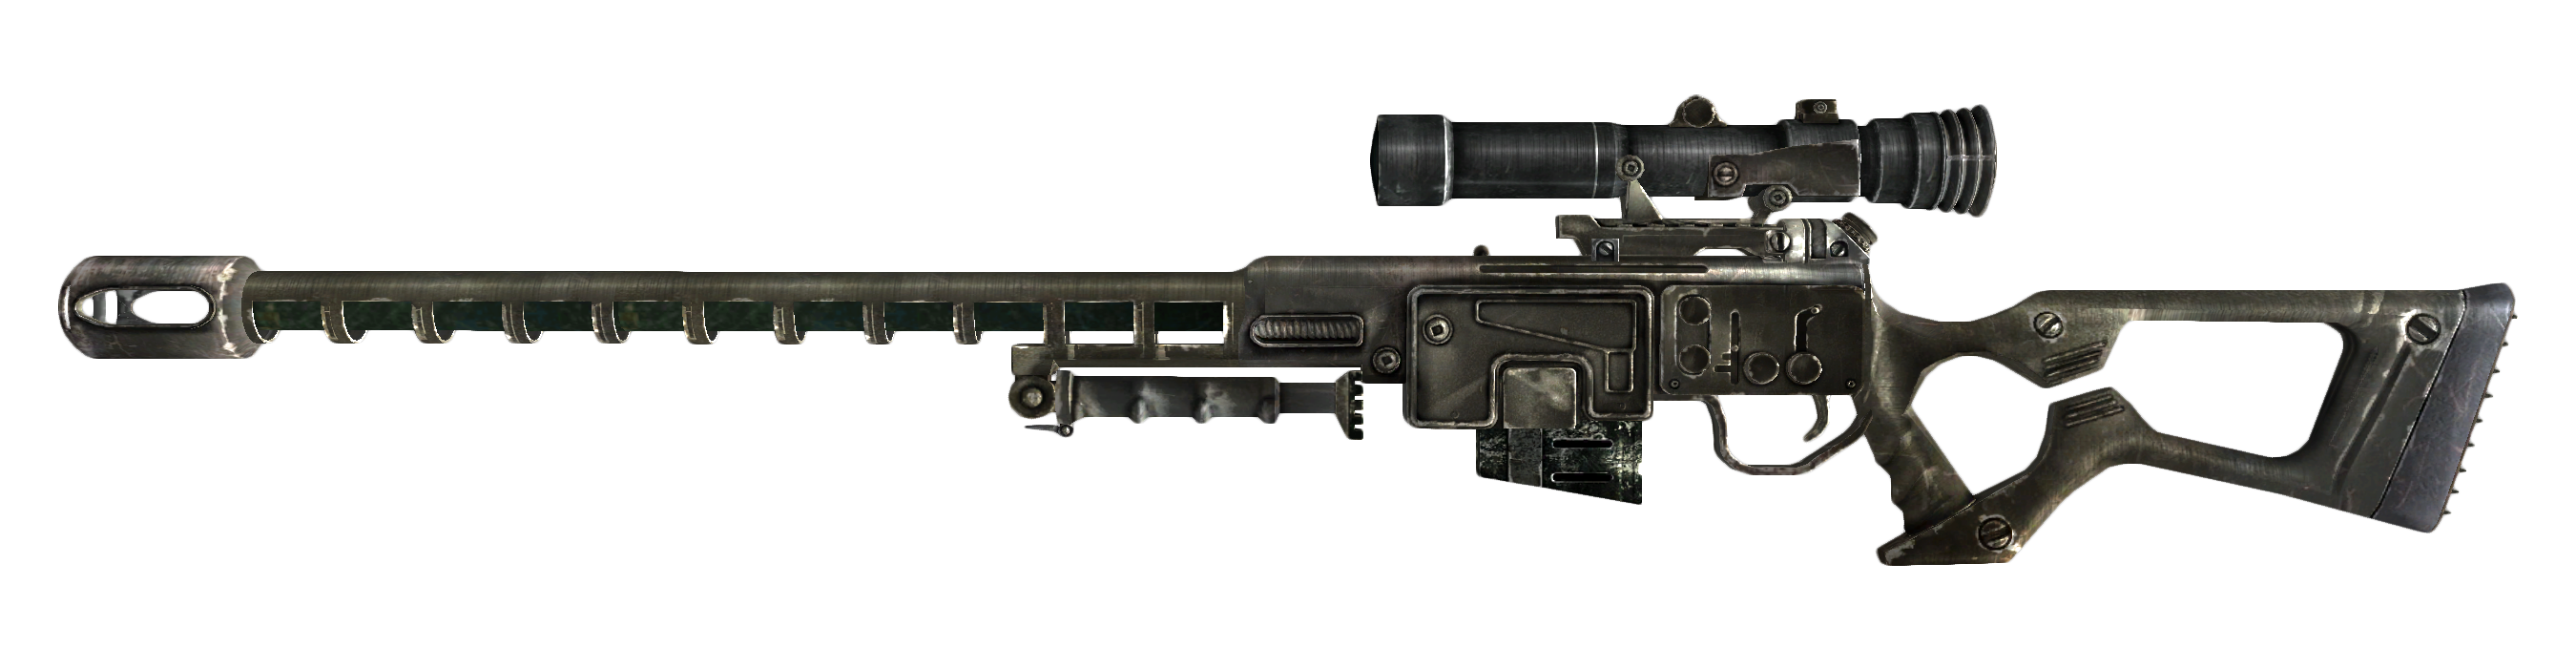 Image - Sniper rifle.png - The Fallout wiki - Fallout: New Vegas and more